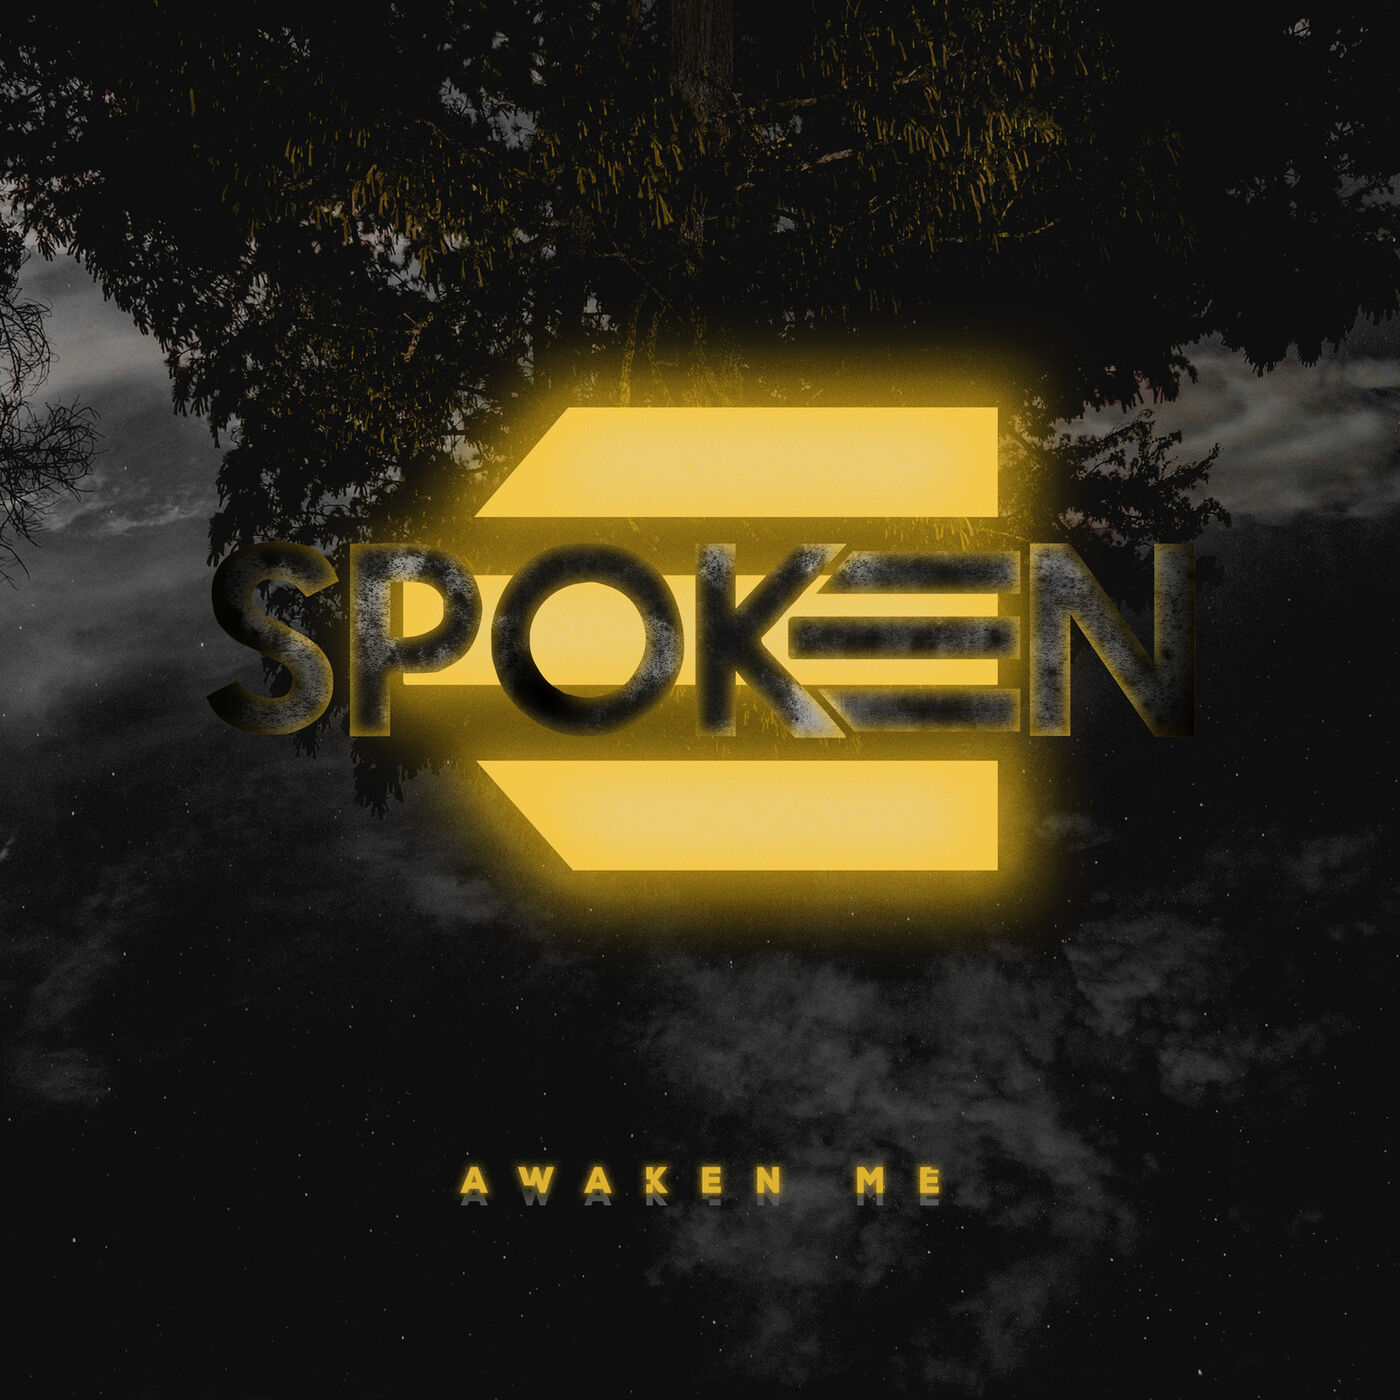 Spoken - Awaken Me [single] (2020)